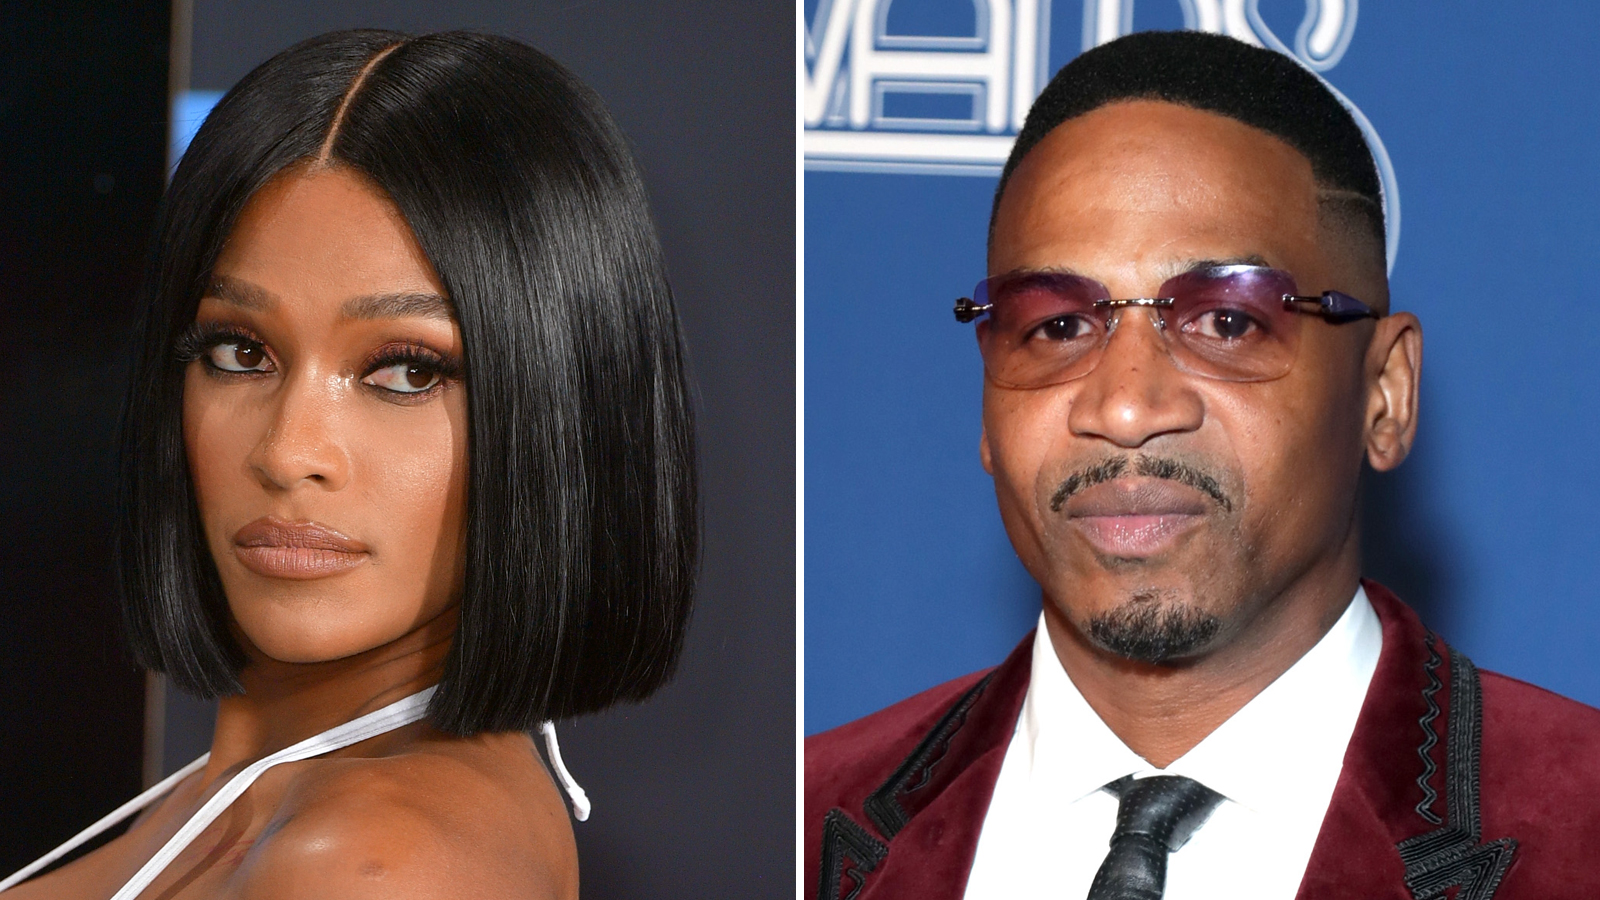 stevie-j-claims-joseline-hernandez-has-been-blocking-him-from-seeing-their-daughter-sues-for-full-custody-and-child-support